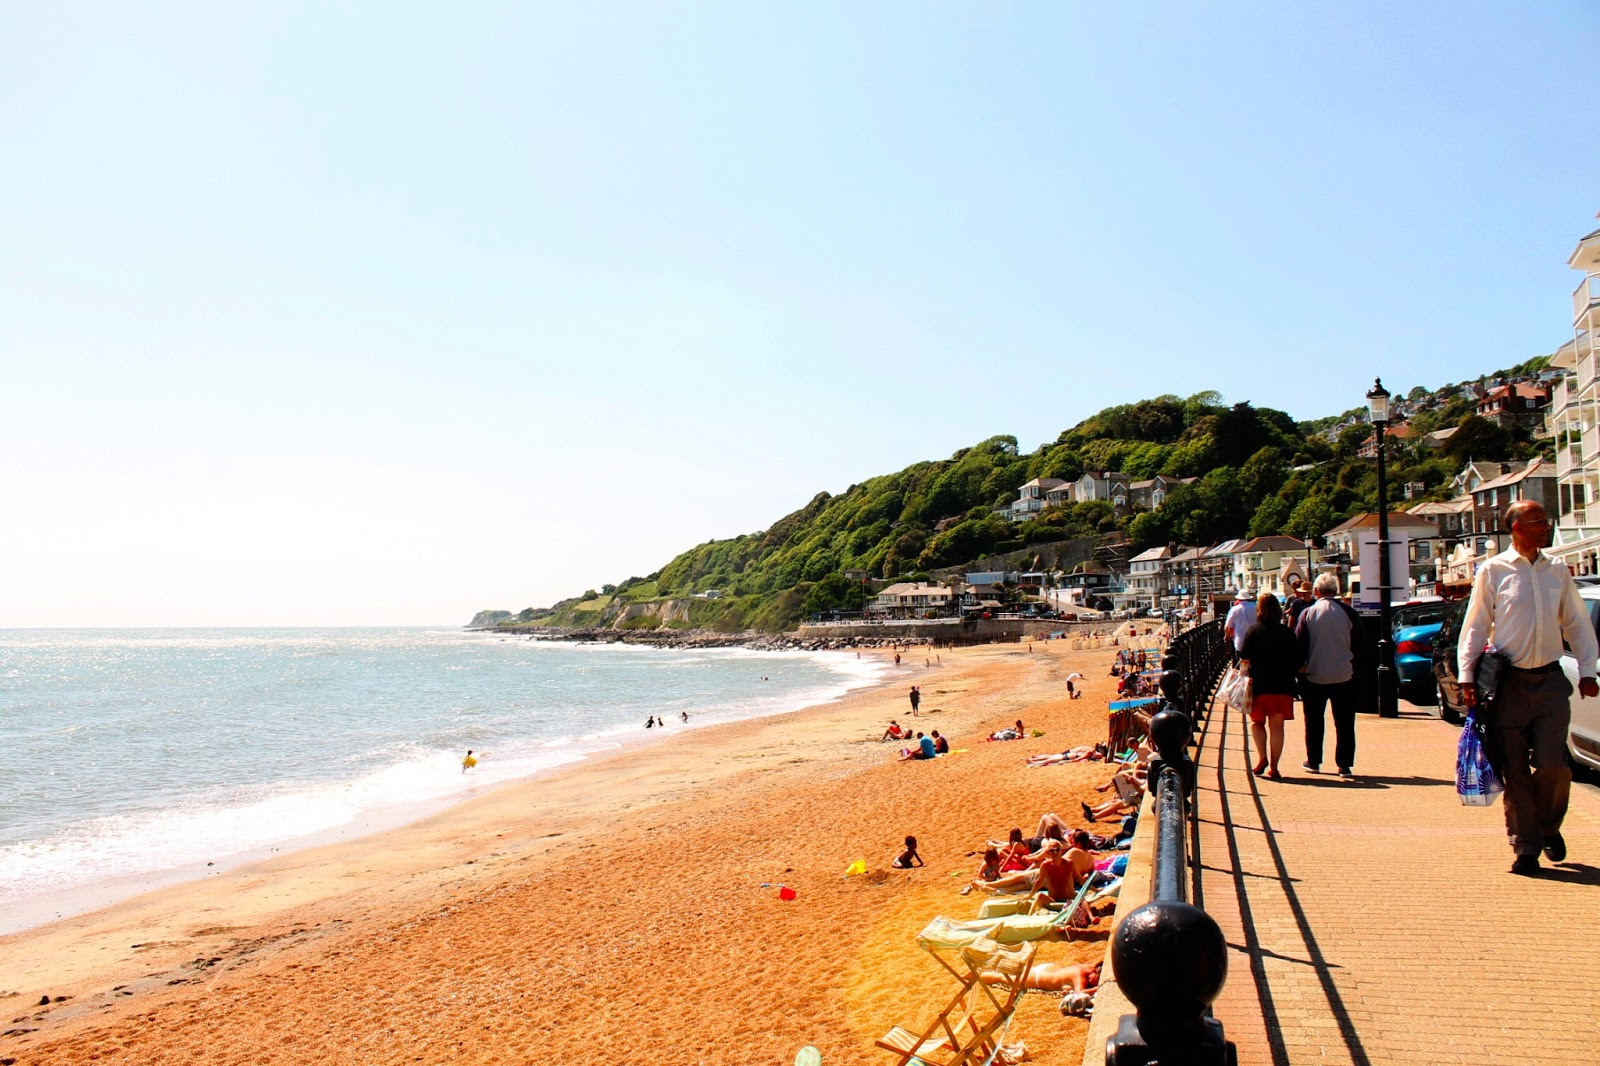 isle of wight ventnor haven town seaside view beach